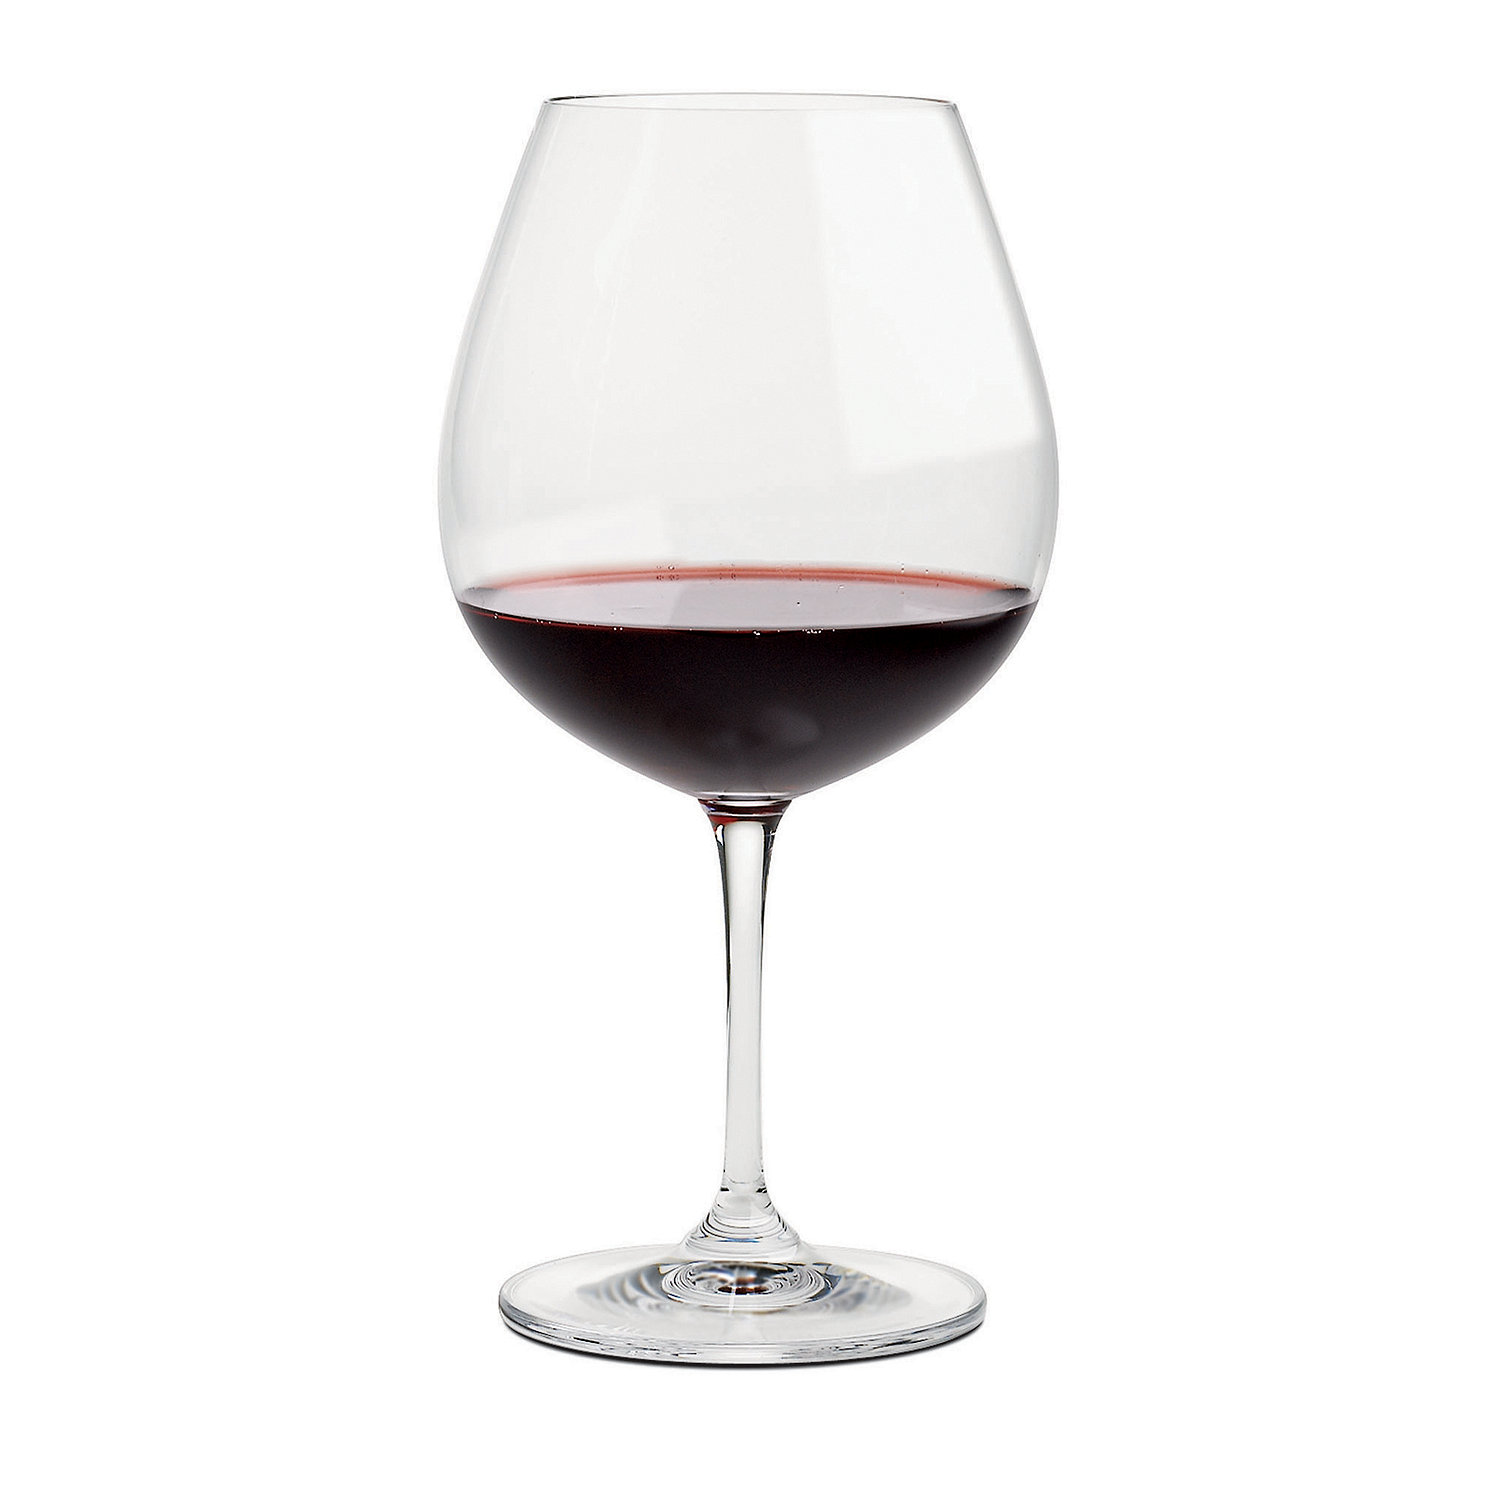 White Winexpert Rubber Wine Glasses Red Wine Making Kits Wine Making Ingredient Kits From Rj Spagnols Sale Rubber Fable Wine Glasses bark post Rubber Wine Glasses